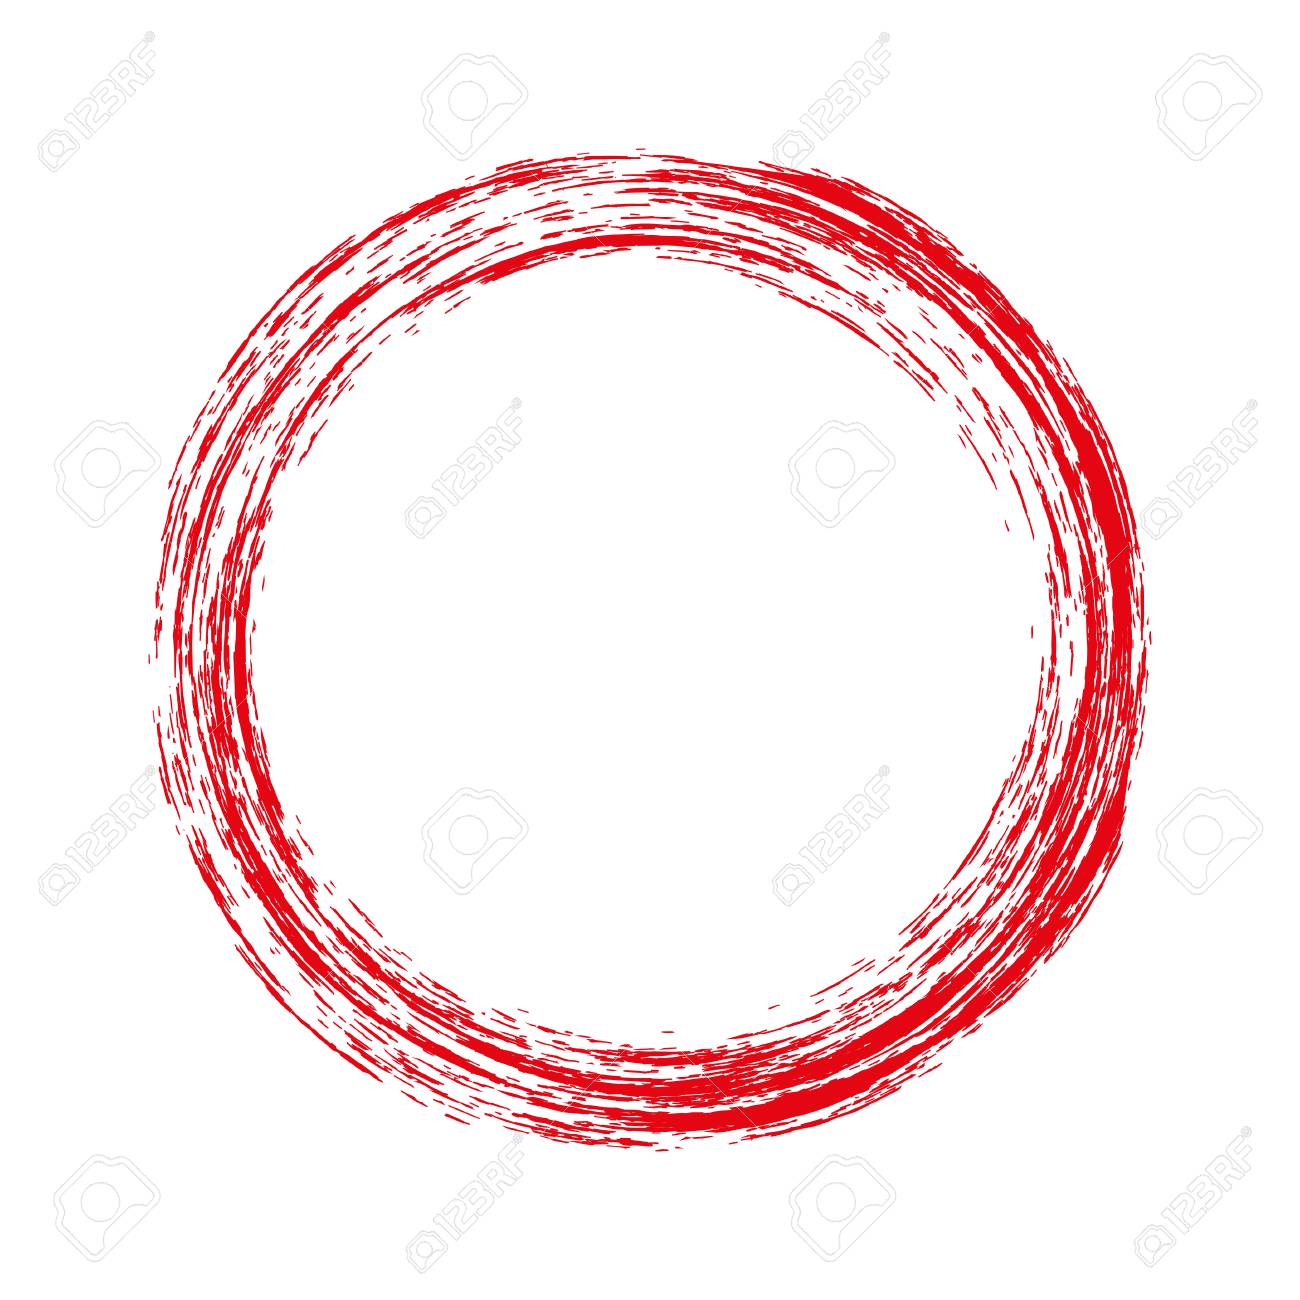 round red frame with grunge vector illustration royalty free rh 123rf com grunge vector texture grunge vector backgrounds